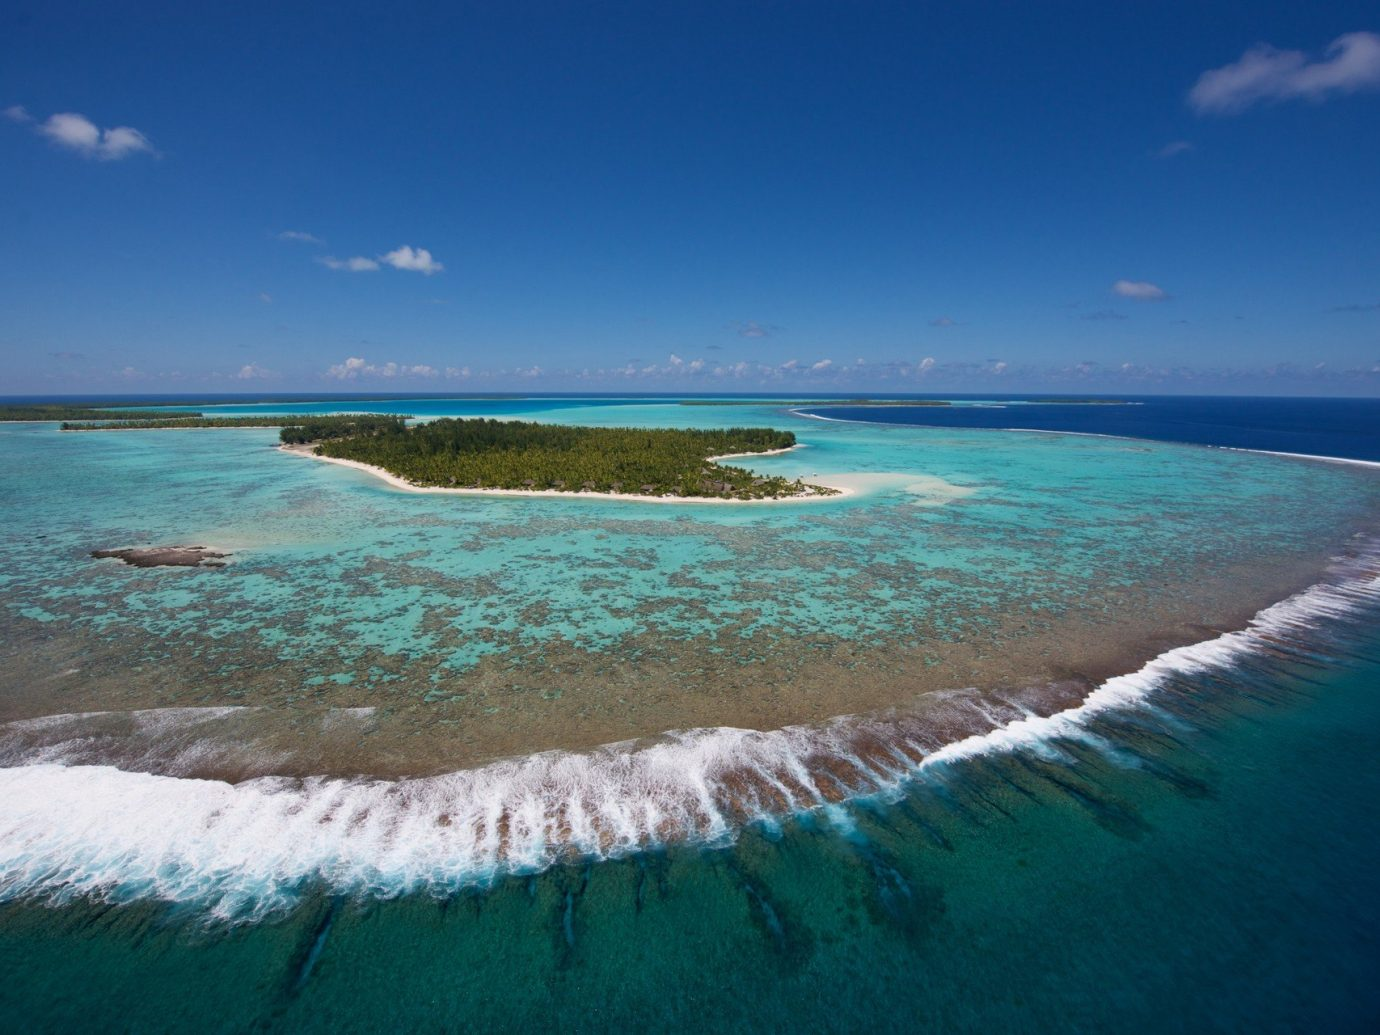 aerial view of The Brando, French Polynesia